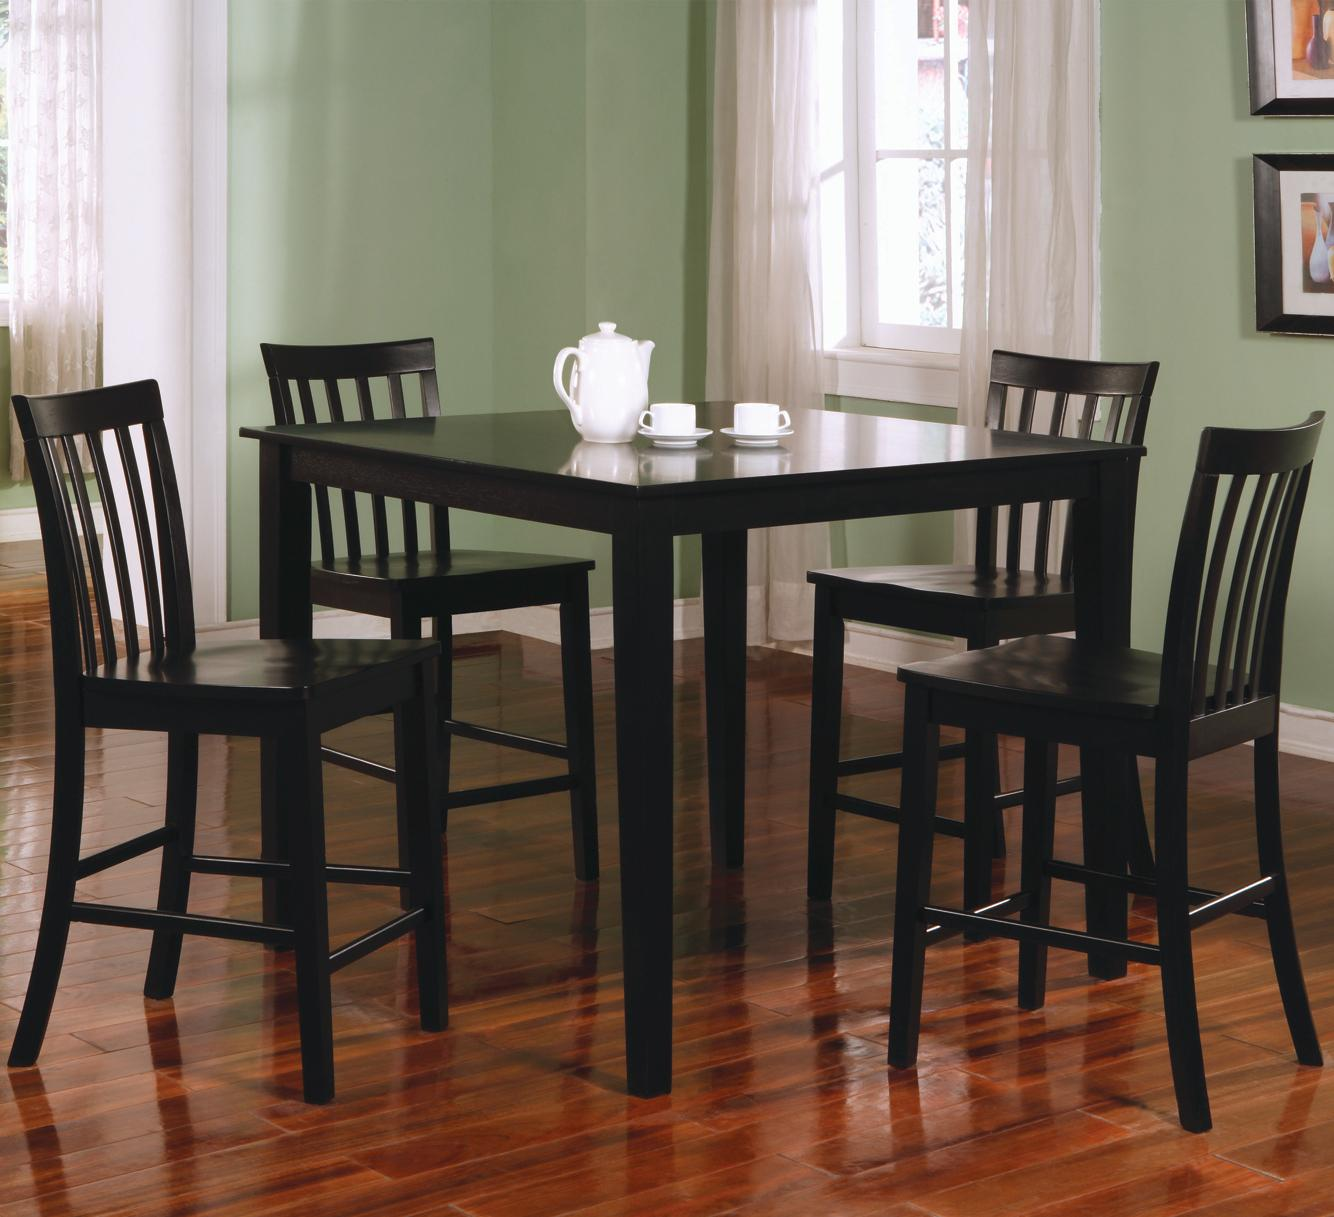 BLK counter height kitchen chairs Coaster Ashland 5 Piece Counter Height Dining Set Coaster Fine Furniture